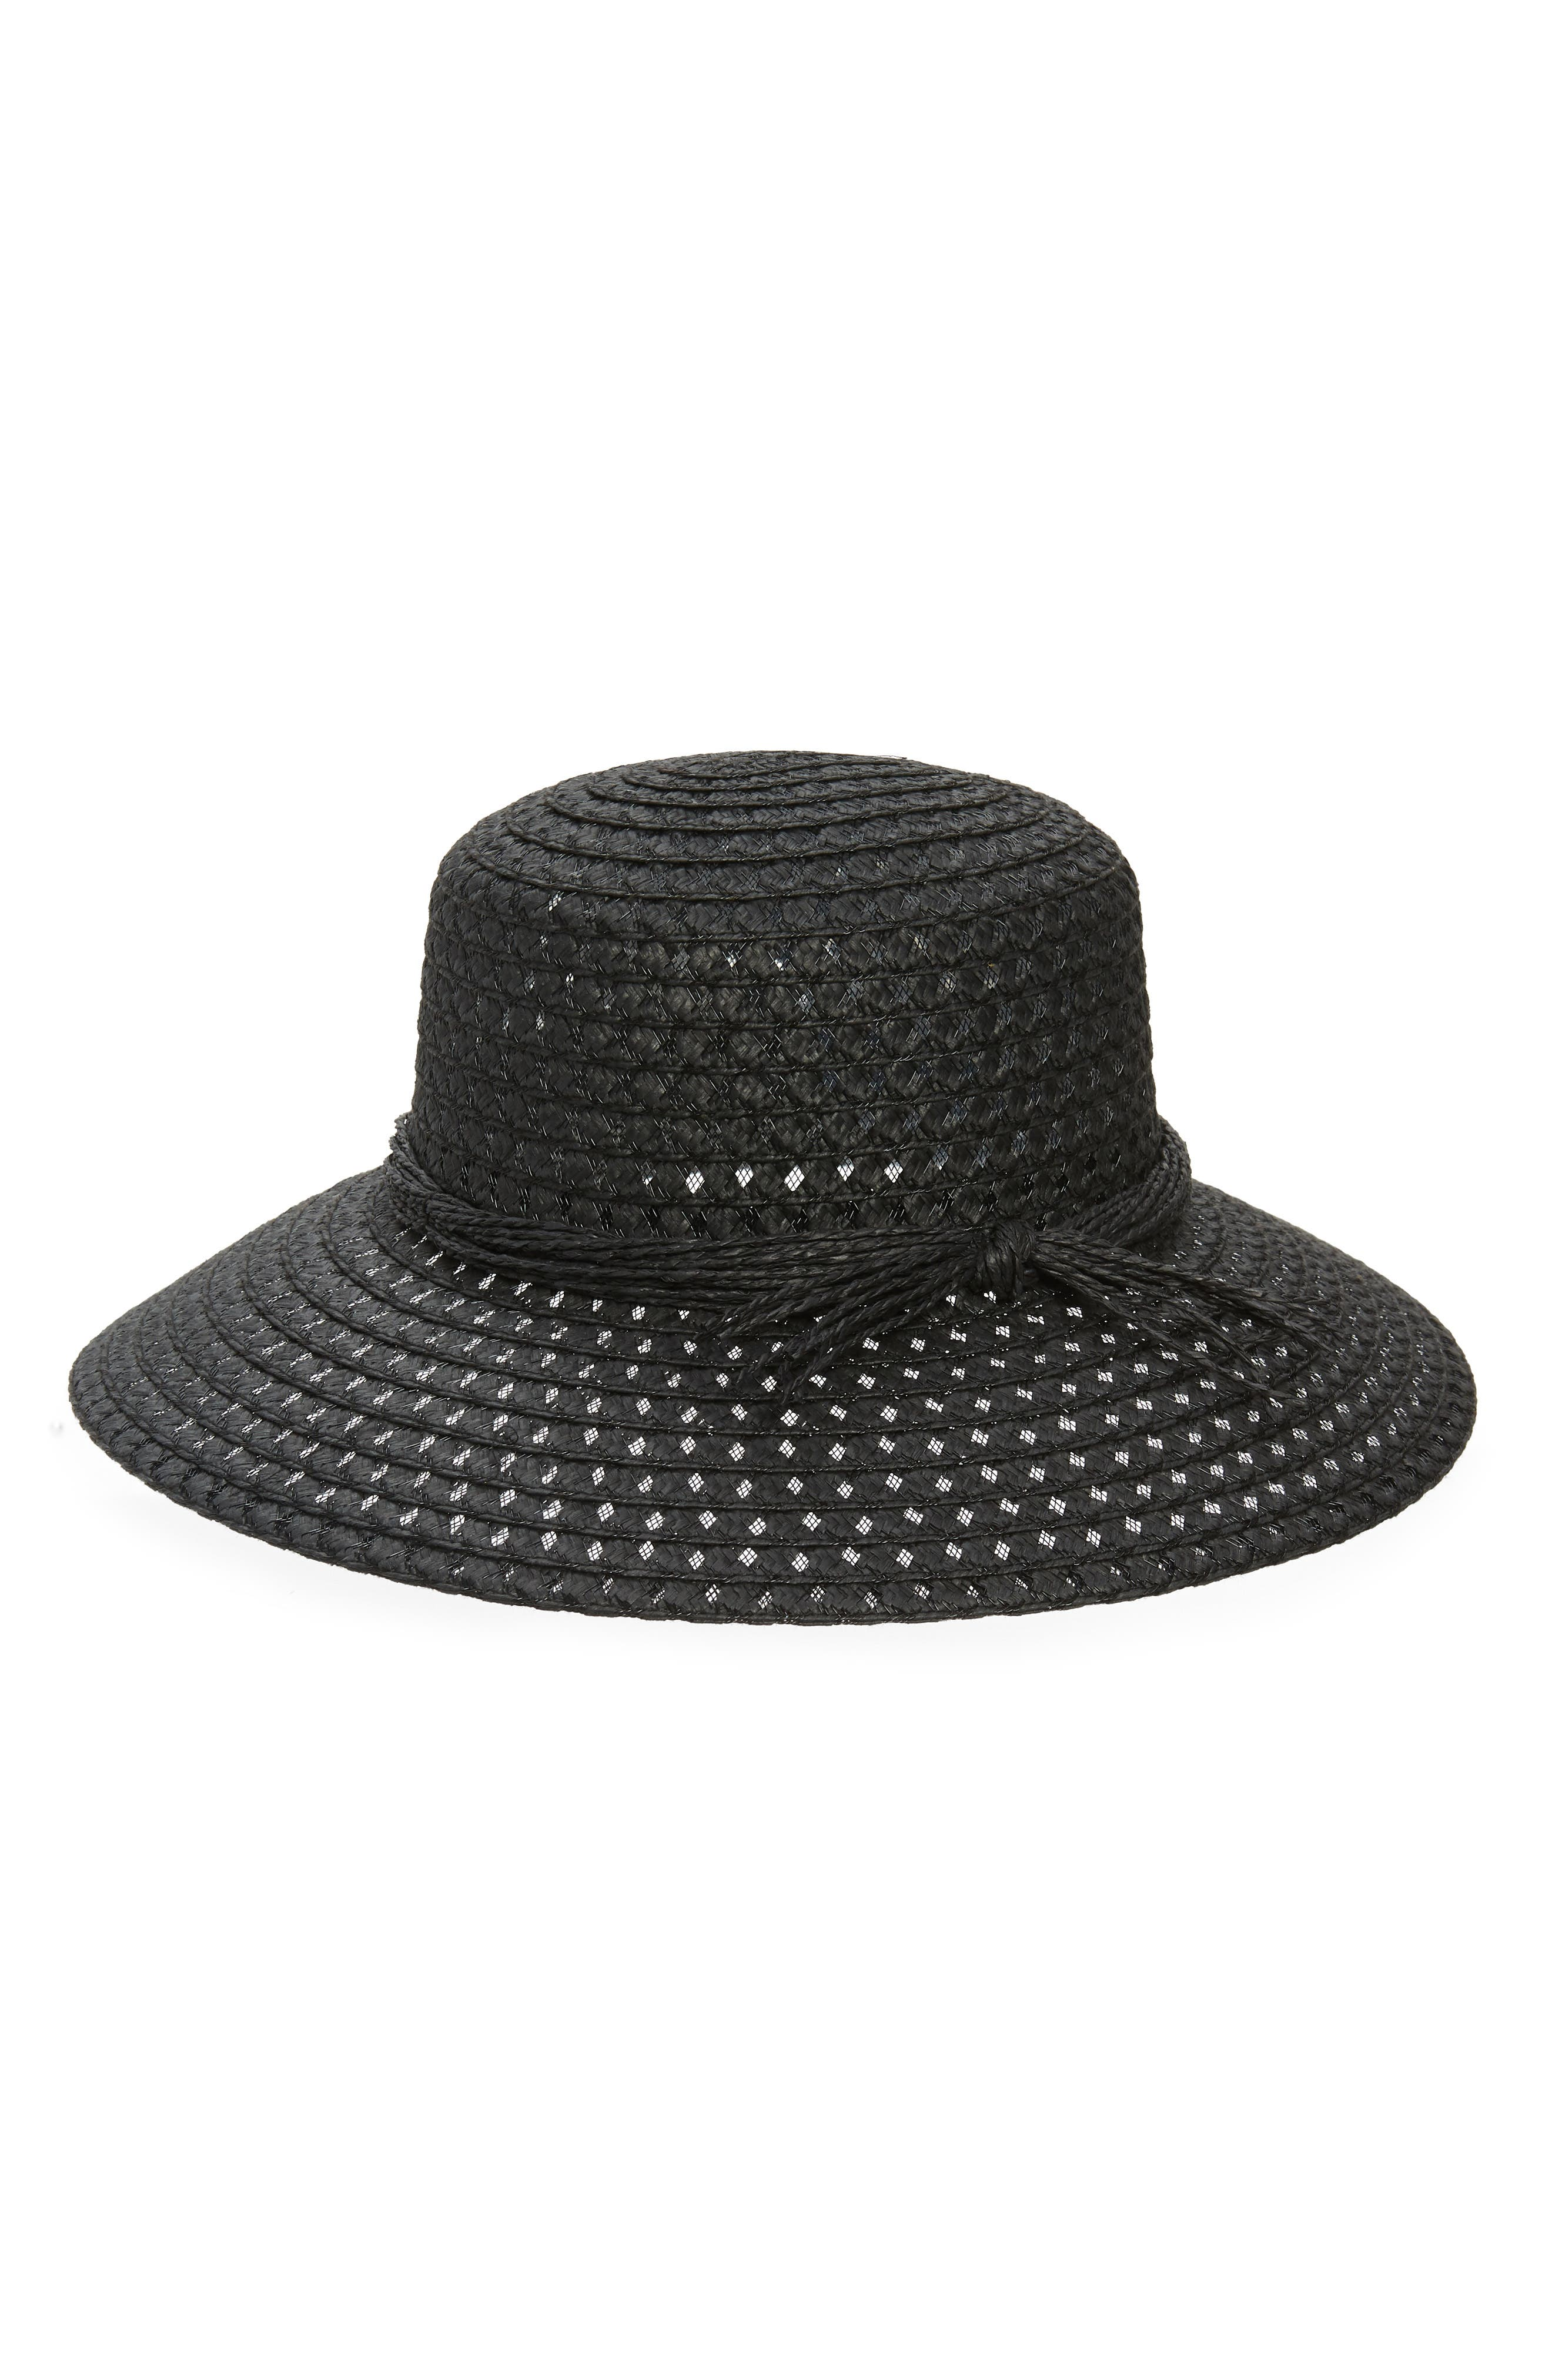 A hat featuring a wide slanted brim with a cooling, open-weave diamond pattern lets the sun play beautifully across your face while you\\\'re lounging poolside. Style Name: Nordstrom Open Weave Hat. Style Number: 5987616. Available in stores.